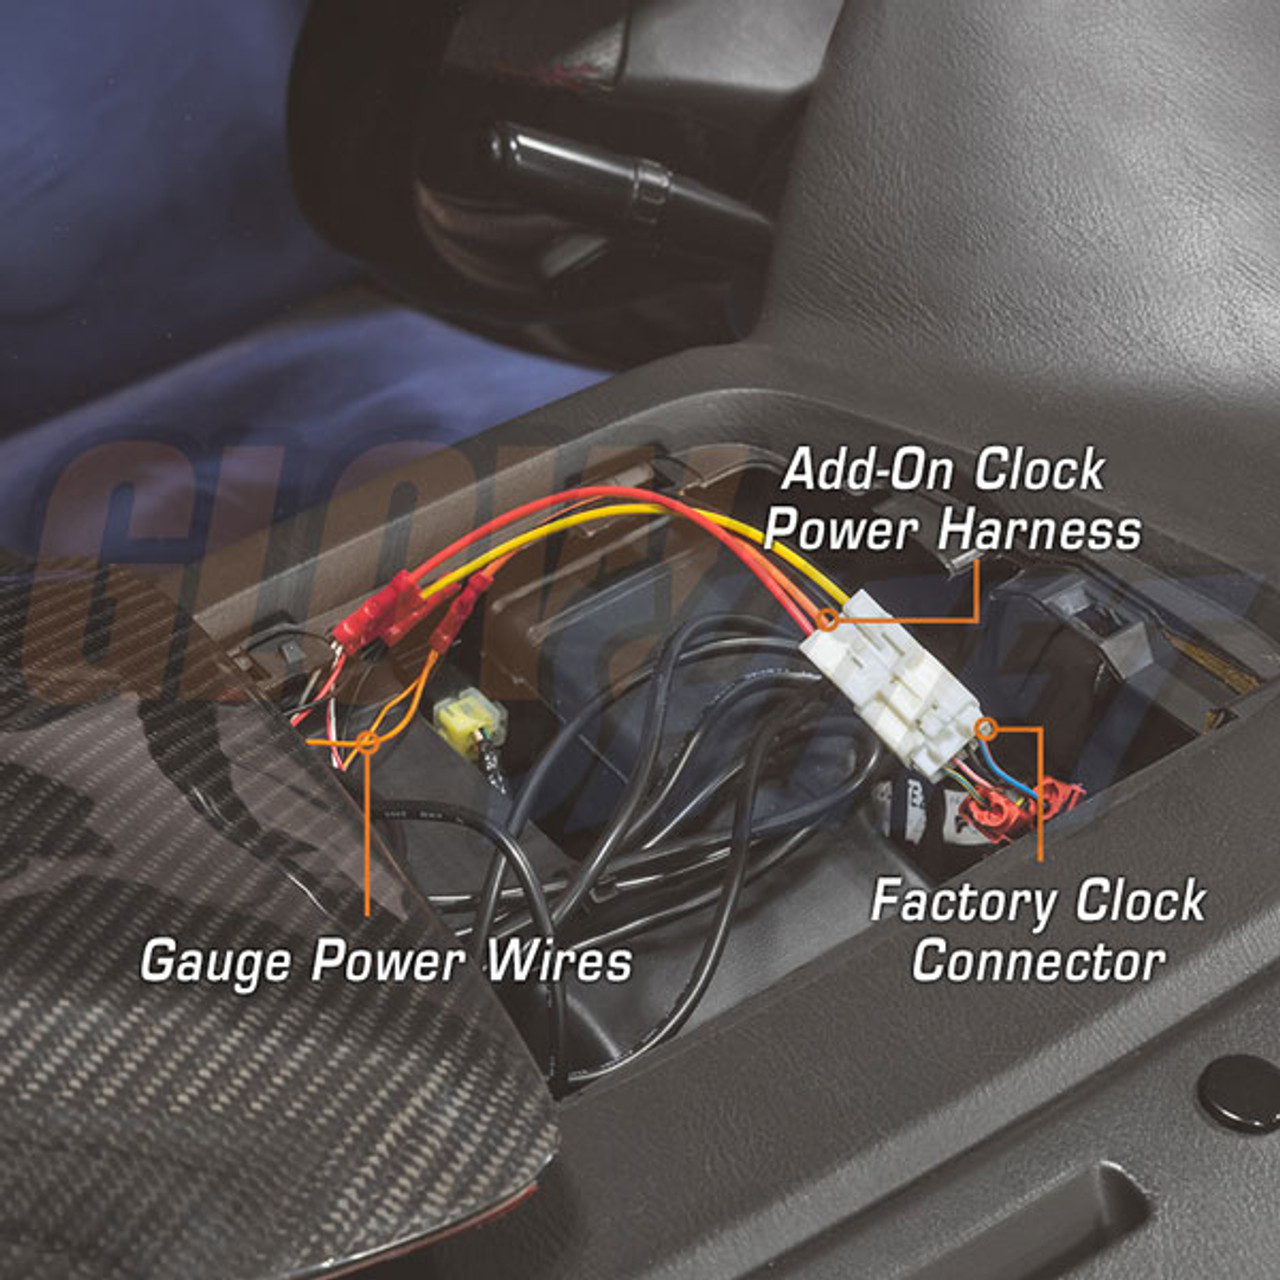 GlowShift | Add-On Clock Power Harness for 2002-2005 Subaru Impreza WRX | Wrx Glowshift Wiring Diagram |  | GlowShift